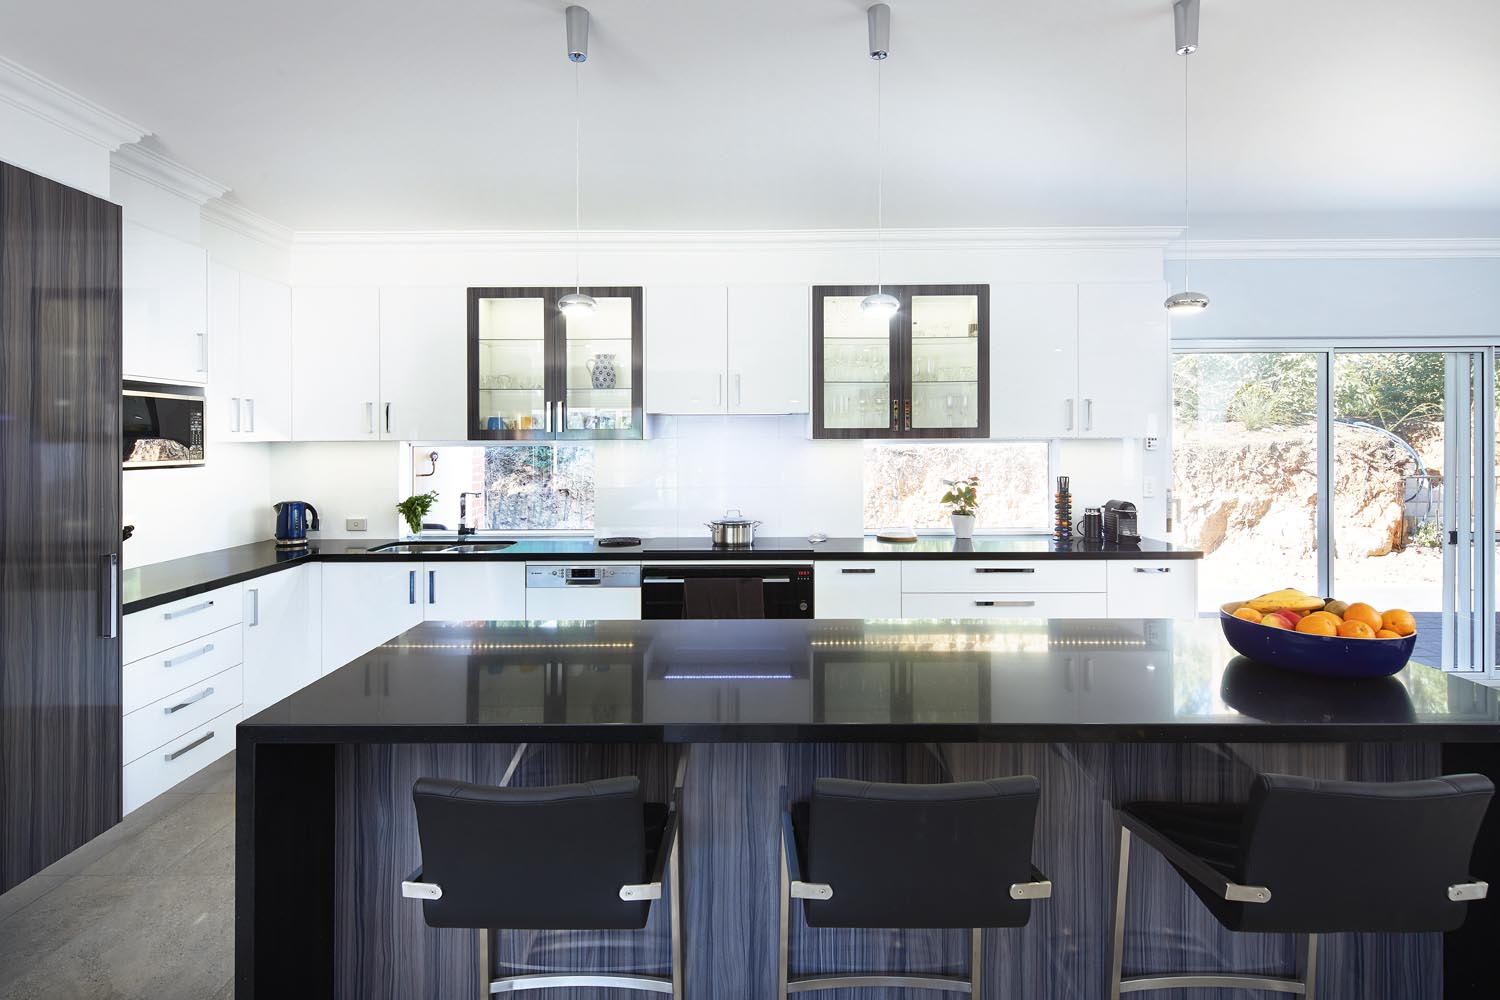 Kitchen project: Light and dark